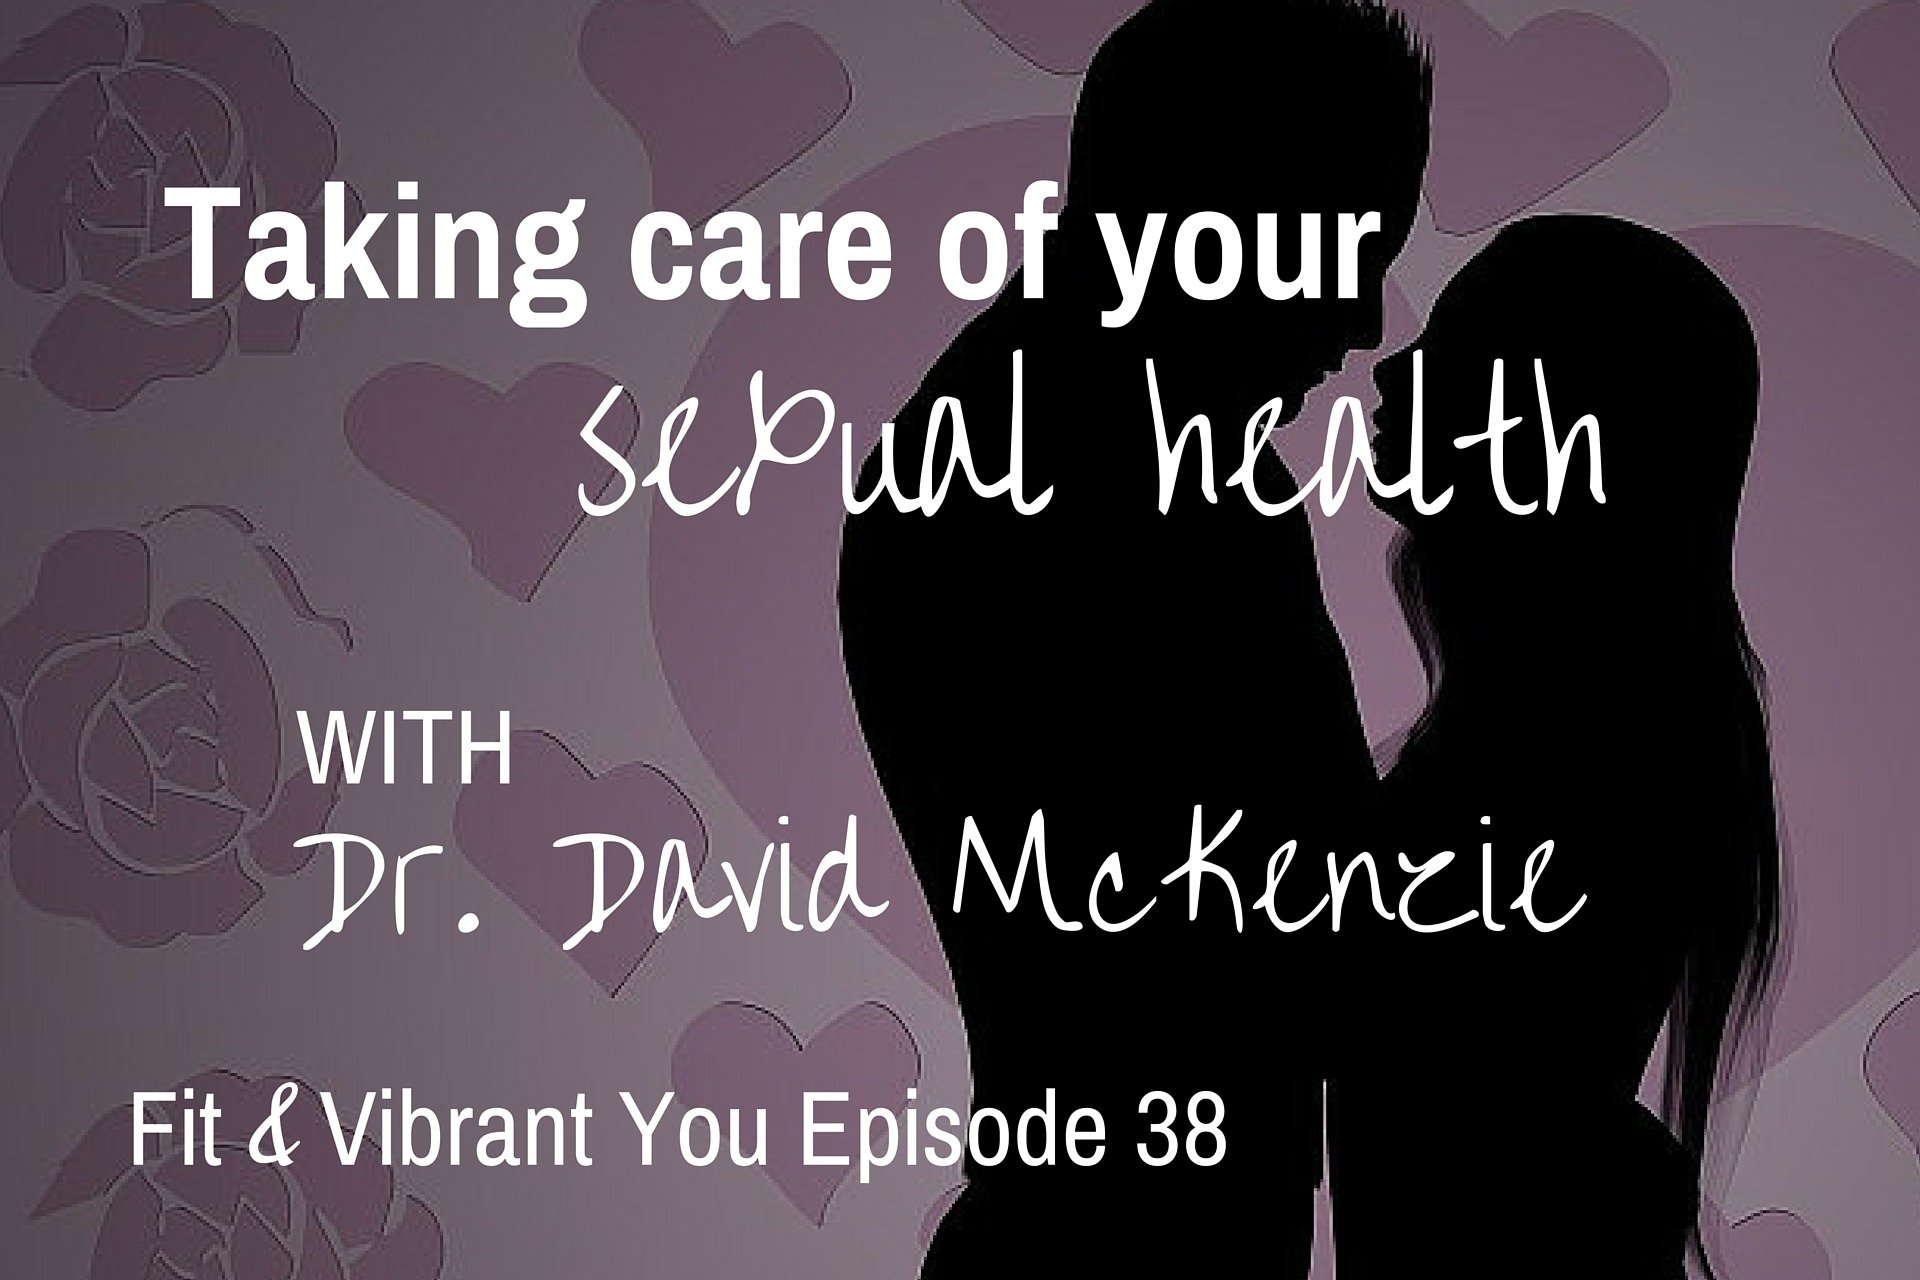 FVY 38: Taking Care of your Sexual Health with Dr. David McKenzie